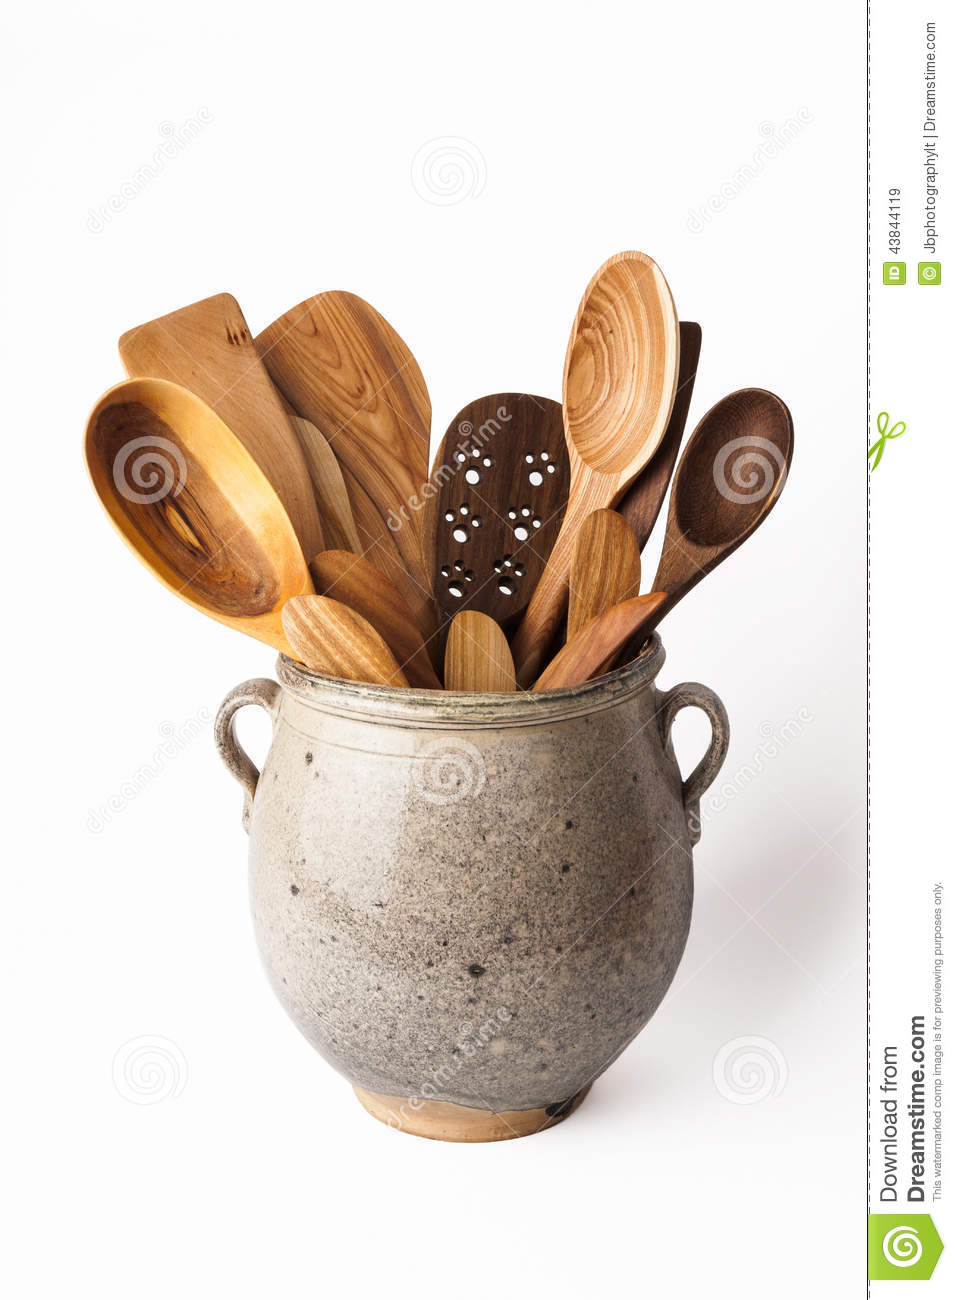 Wood Kitchen Equipment : Kitchen utensils stock photo image